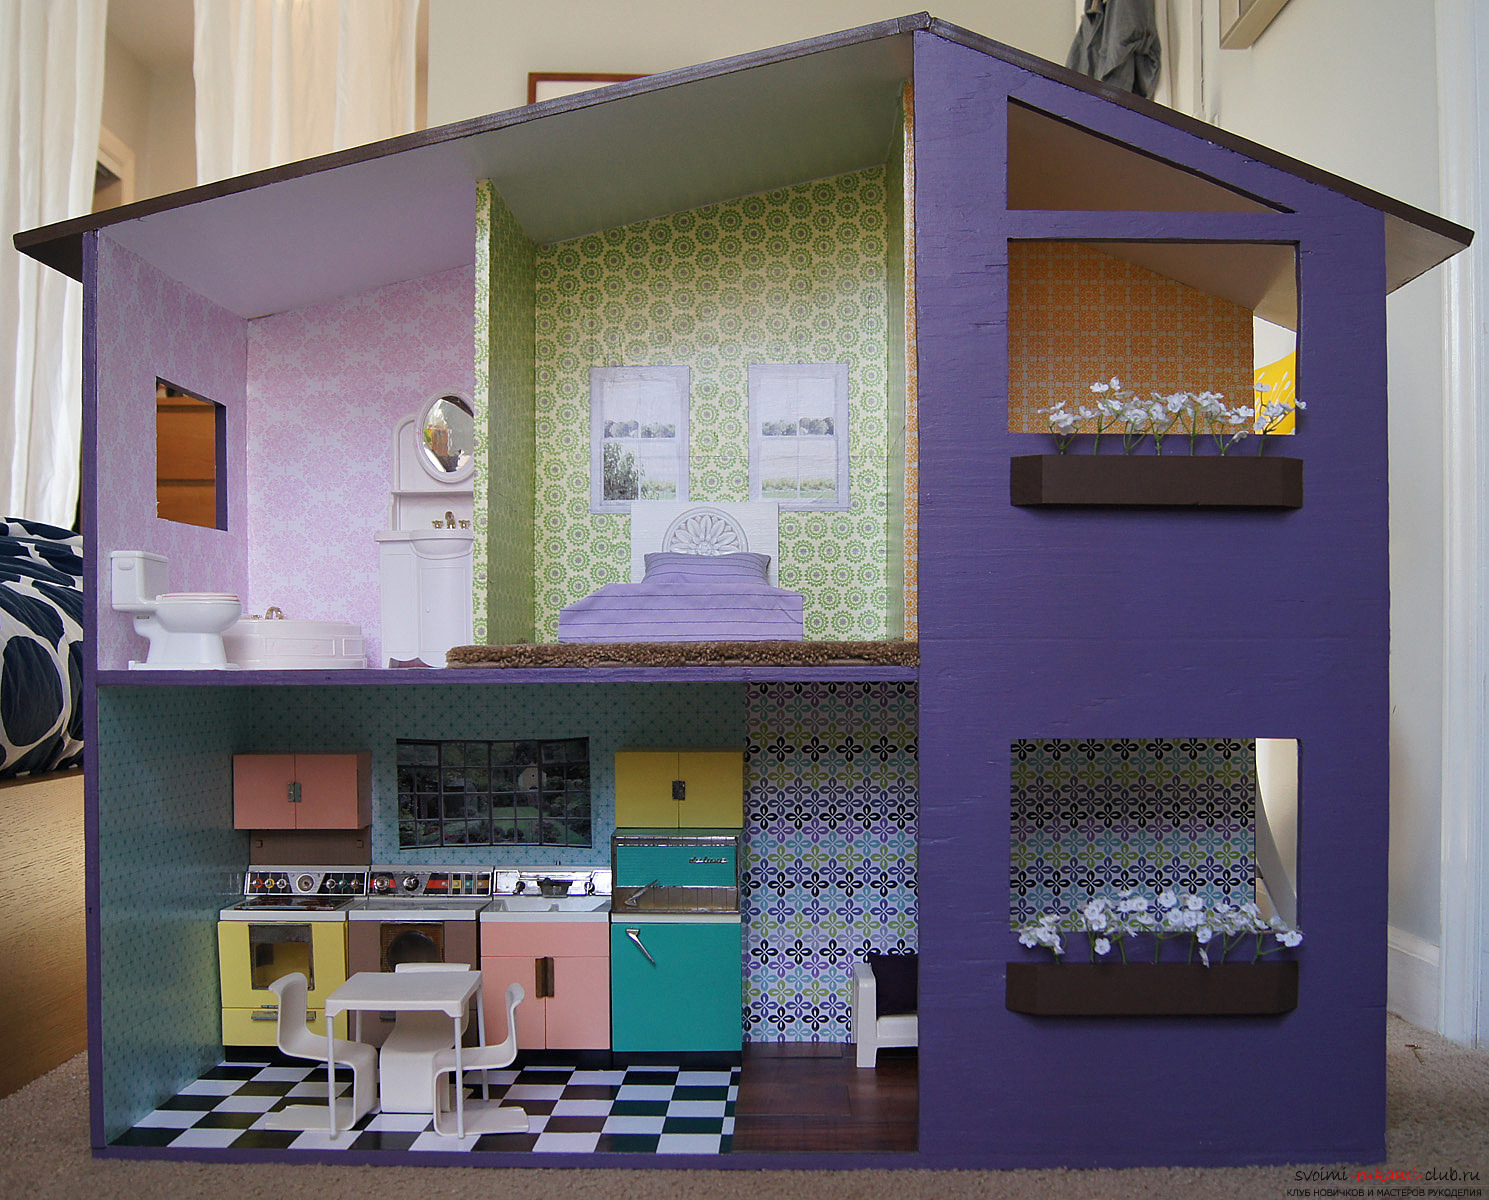 How to make a doll house from improvised funds with your own hands? - Practical moments and tips for creating. Photo # 2